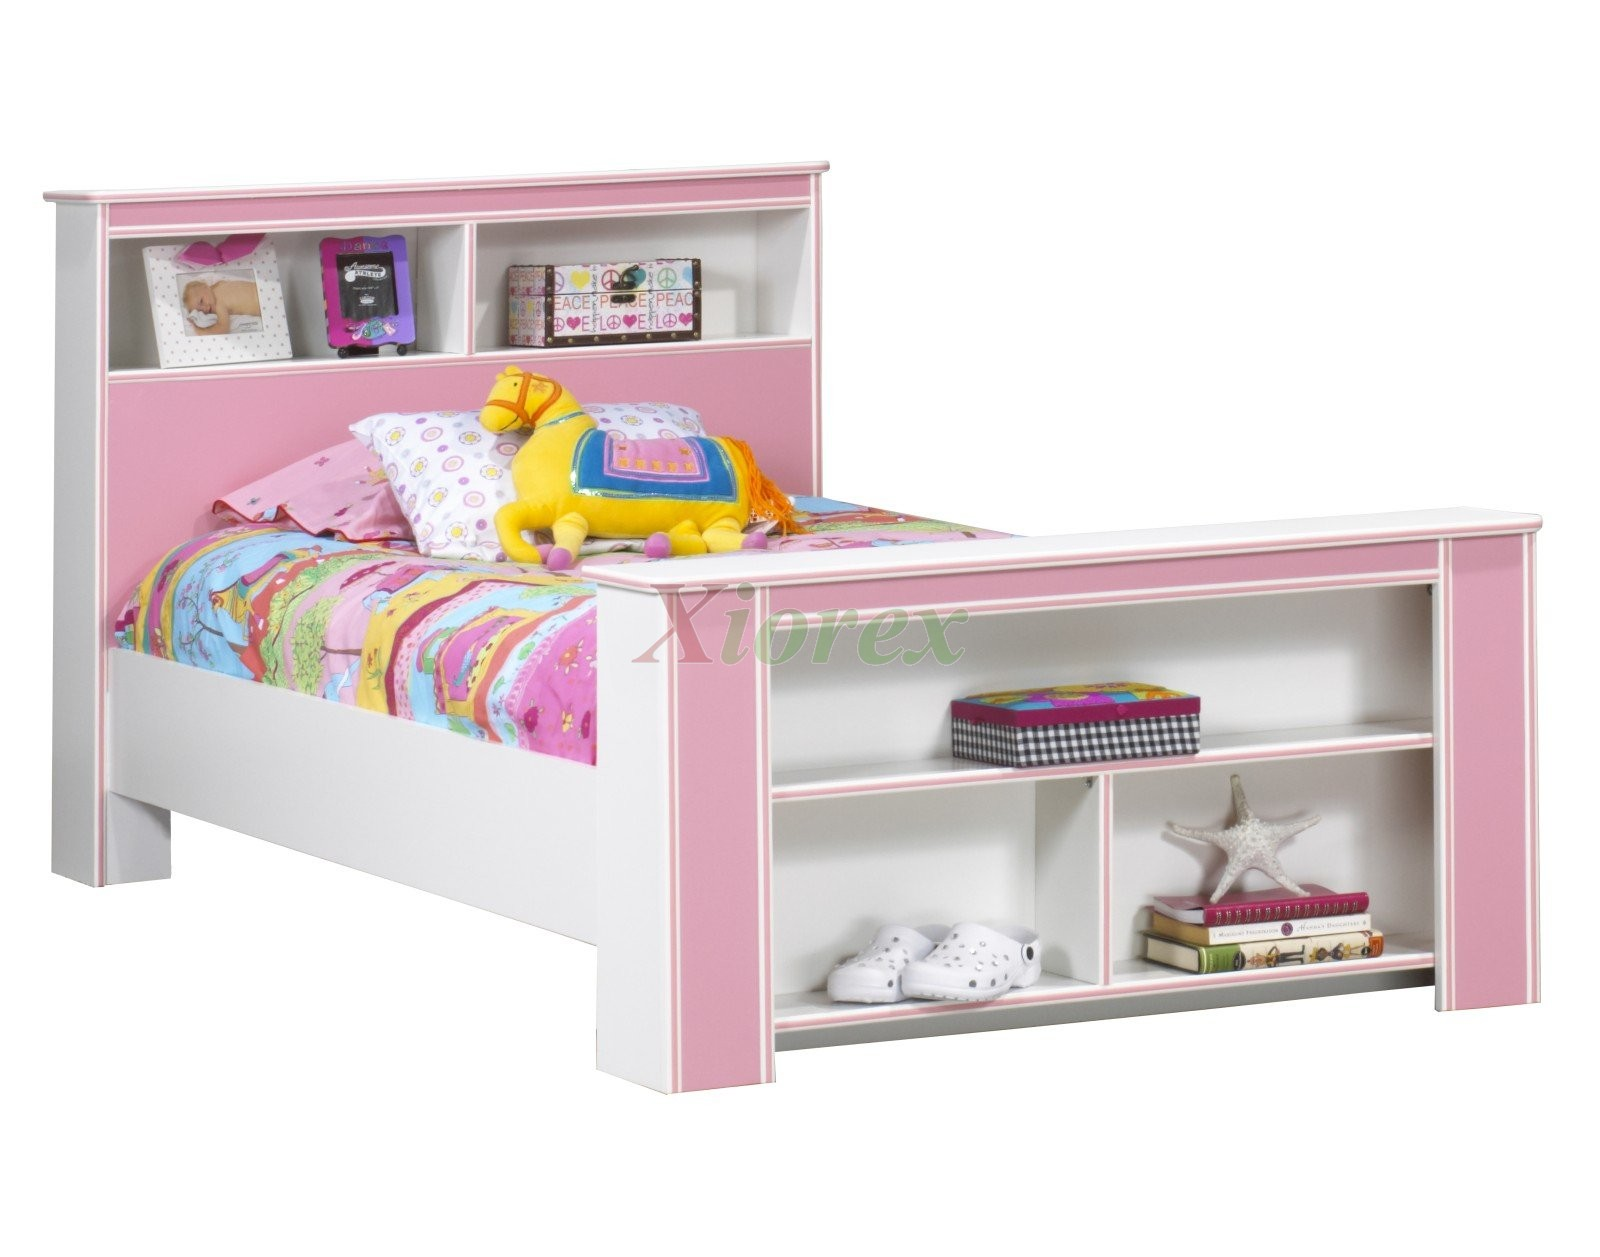 bookcase headboard footboard bed frames life line tango beds - Girls Twin Bed Frame